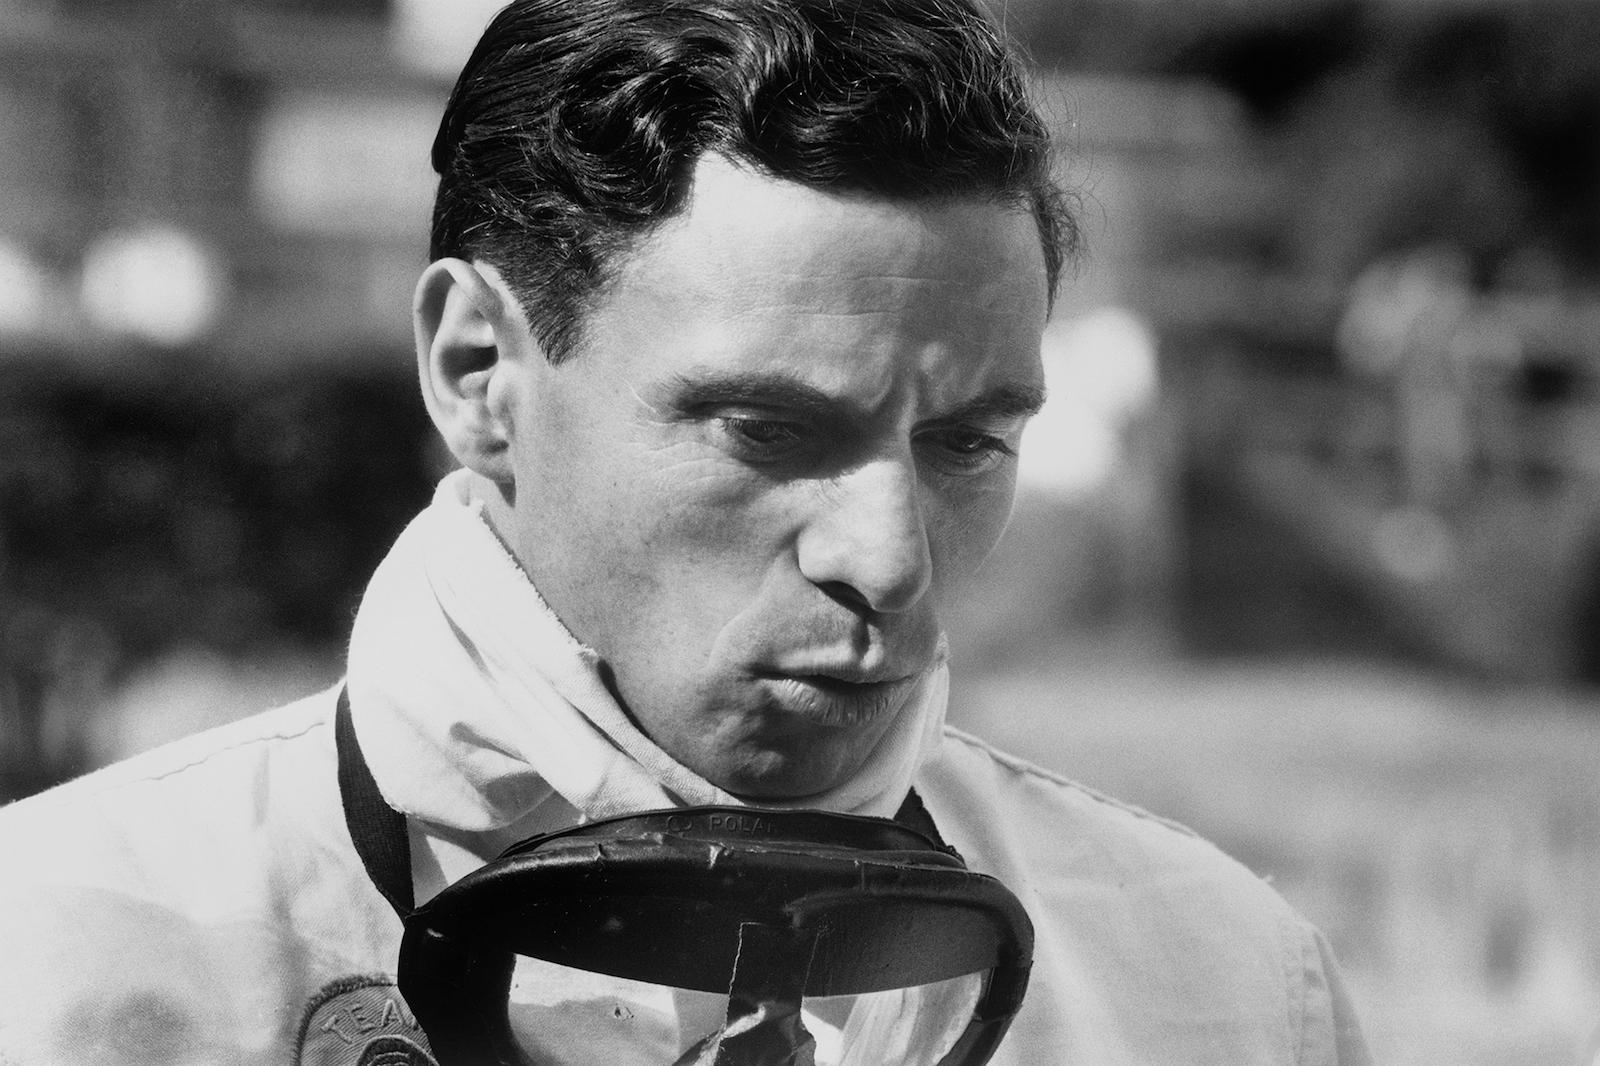 Jim Clark – 'The standard by which all others must be judged'